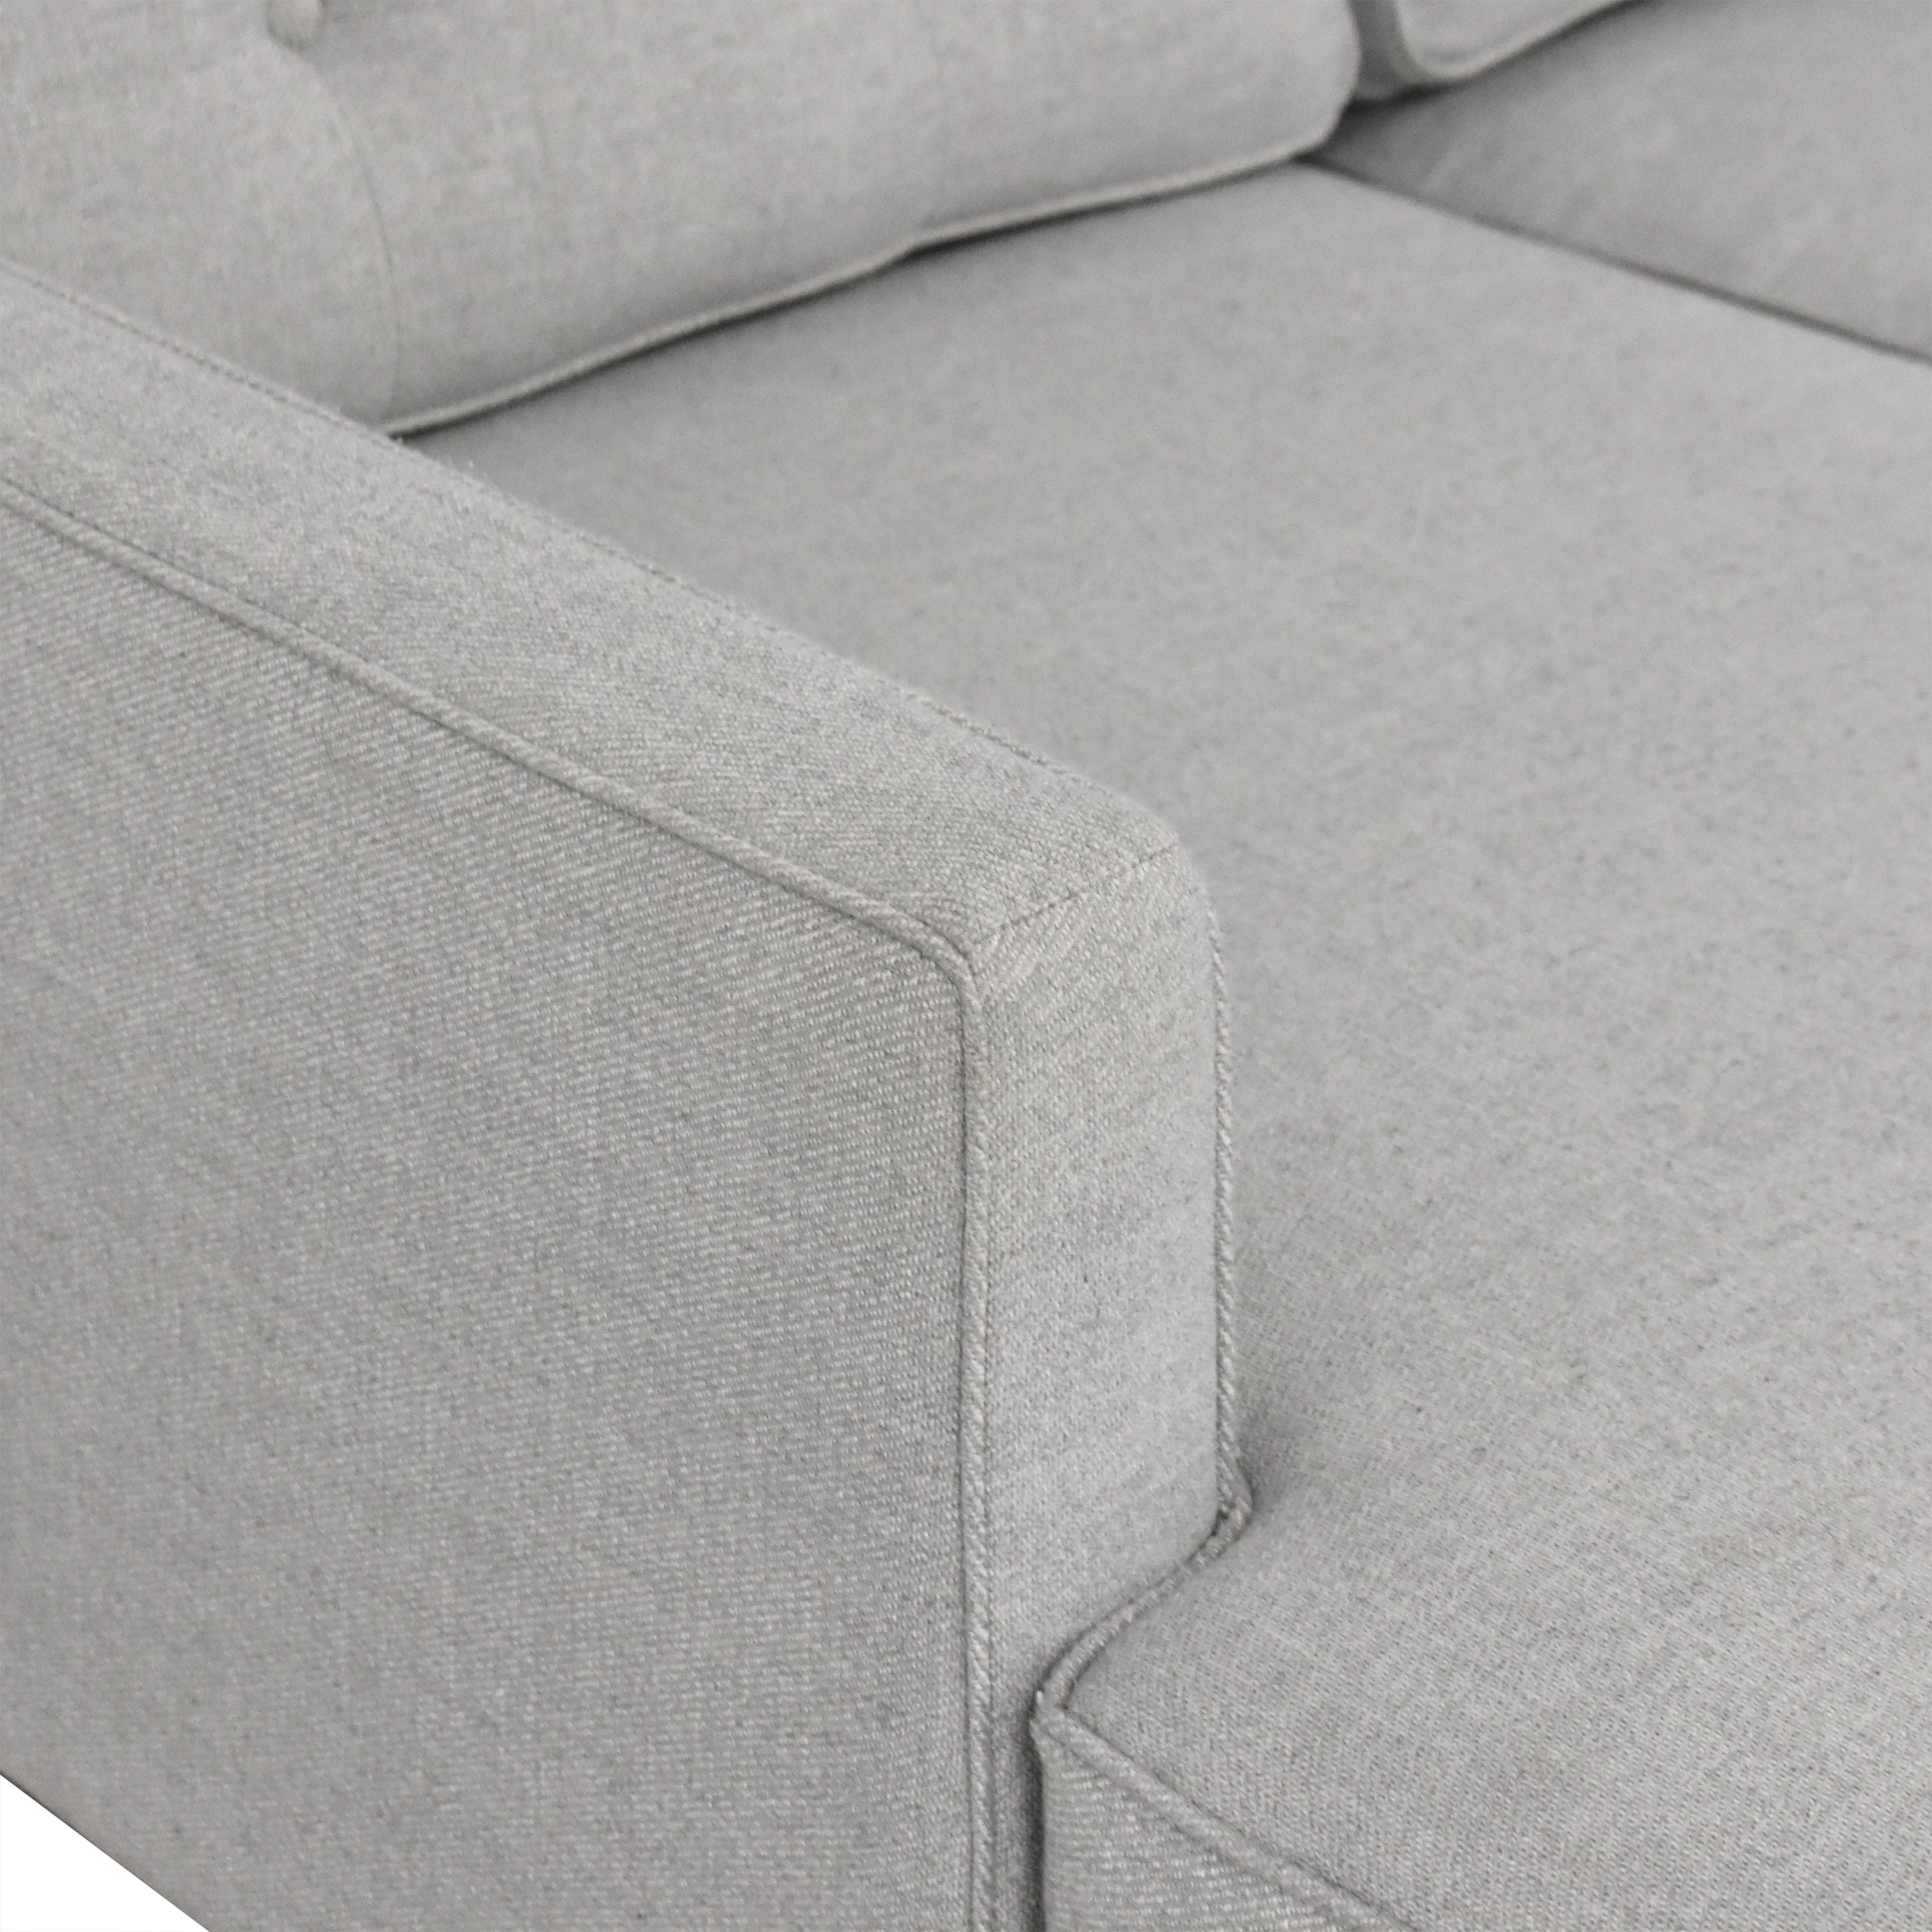 West Elm West Elm Drake Reversible Chaise Sectional Sofa on sale